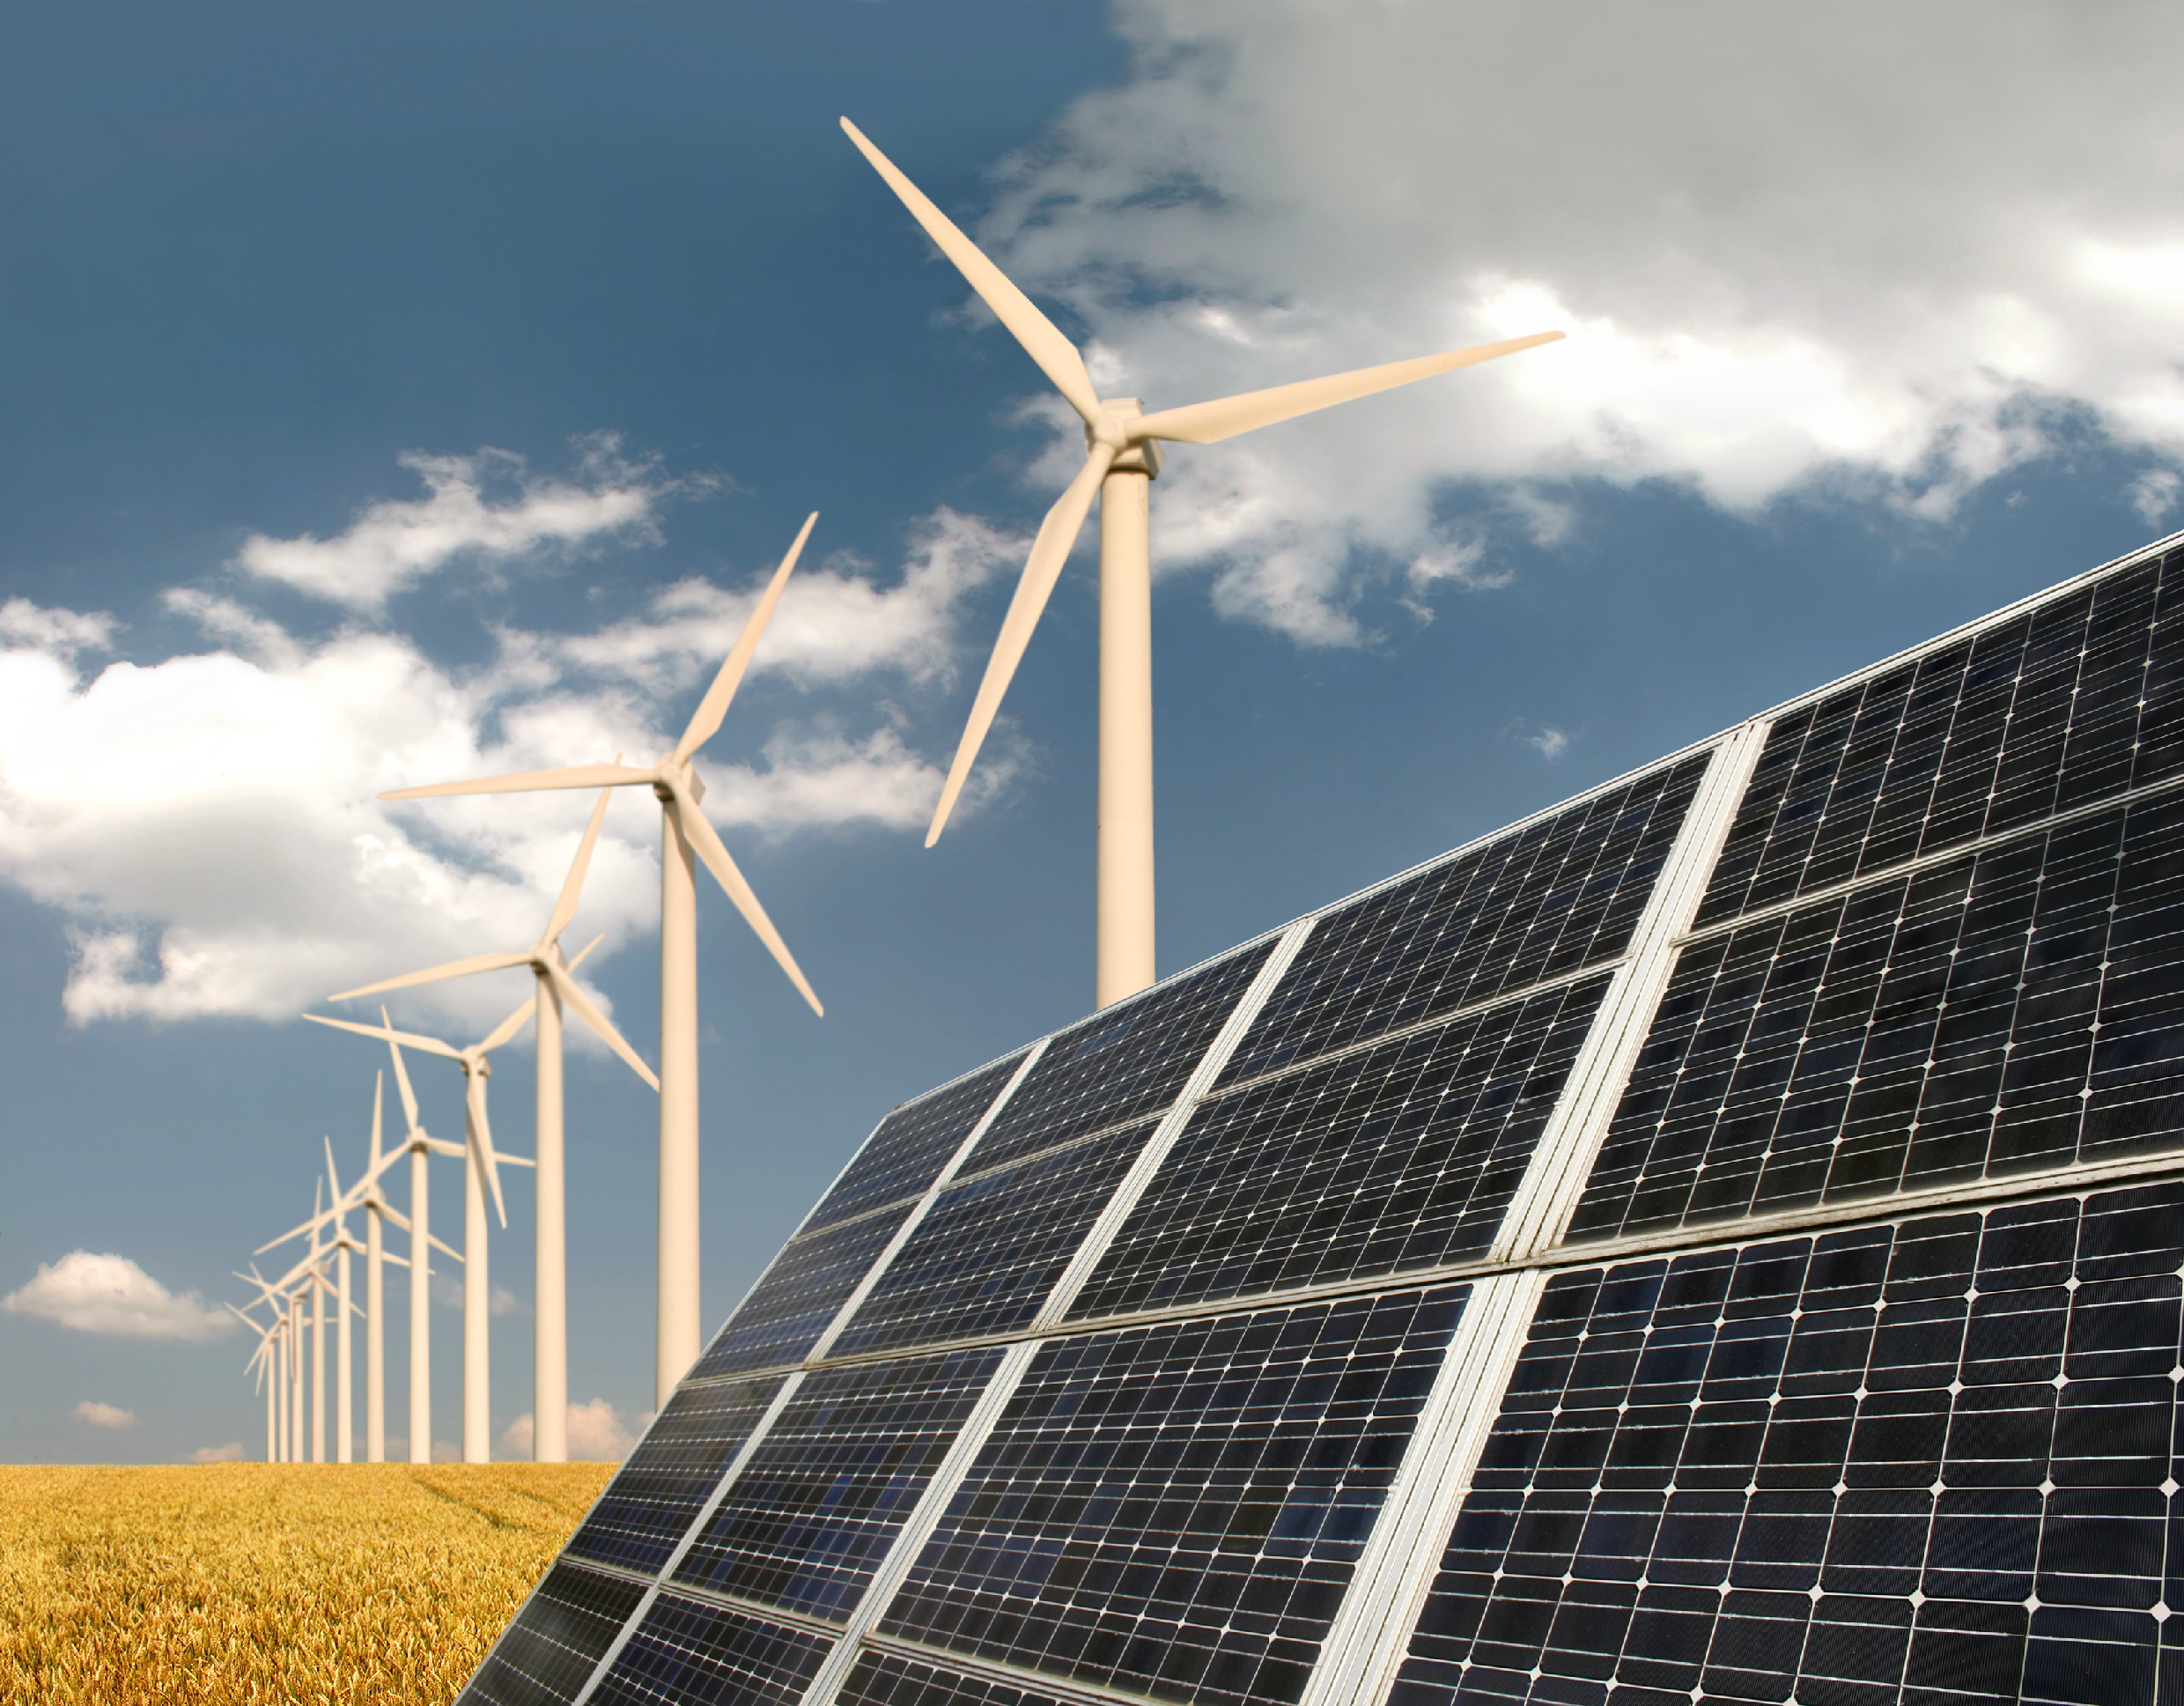 ... renewables | Energy 3.0 : the webmagazine about energy efficiency